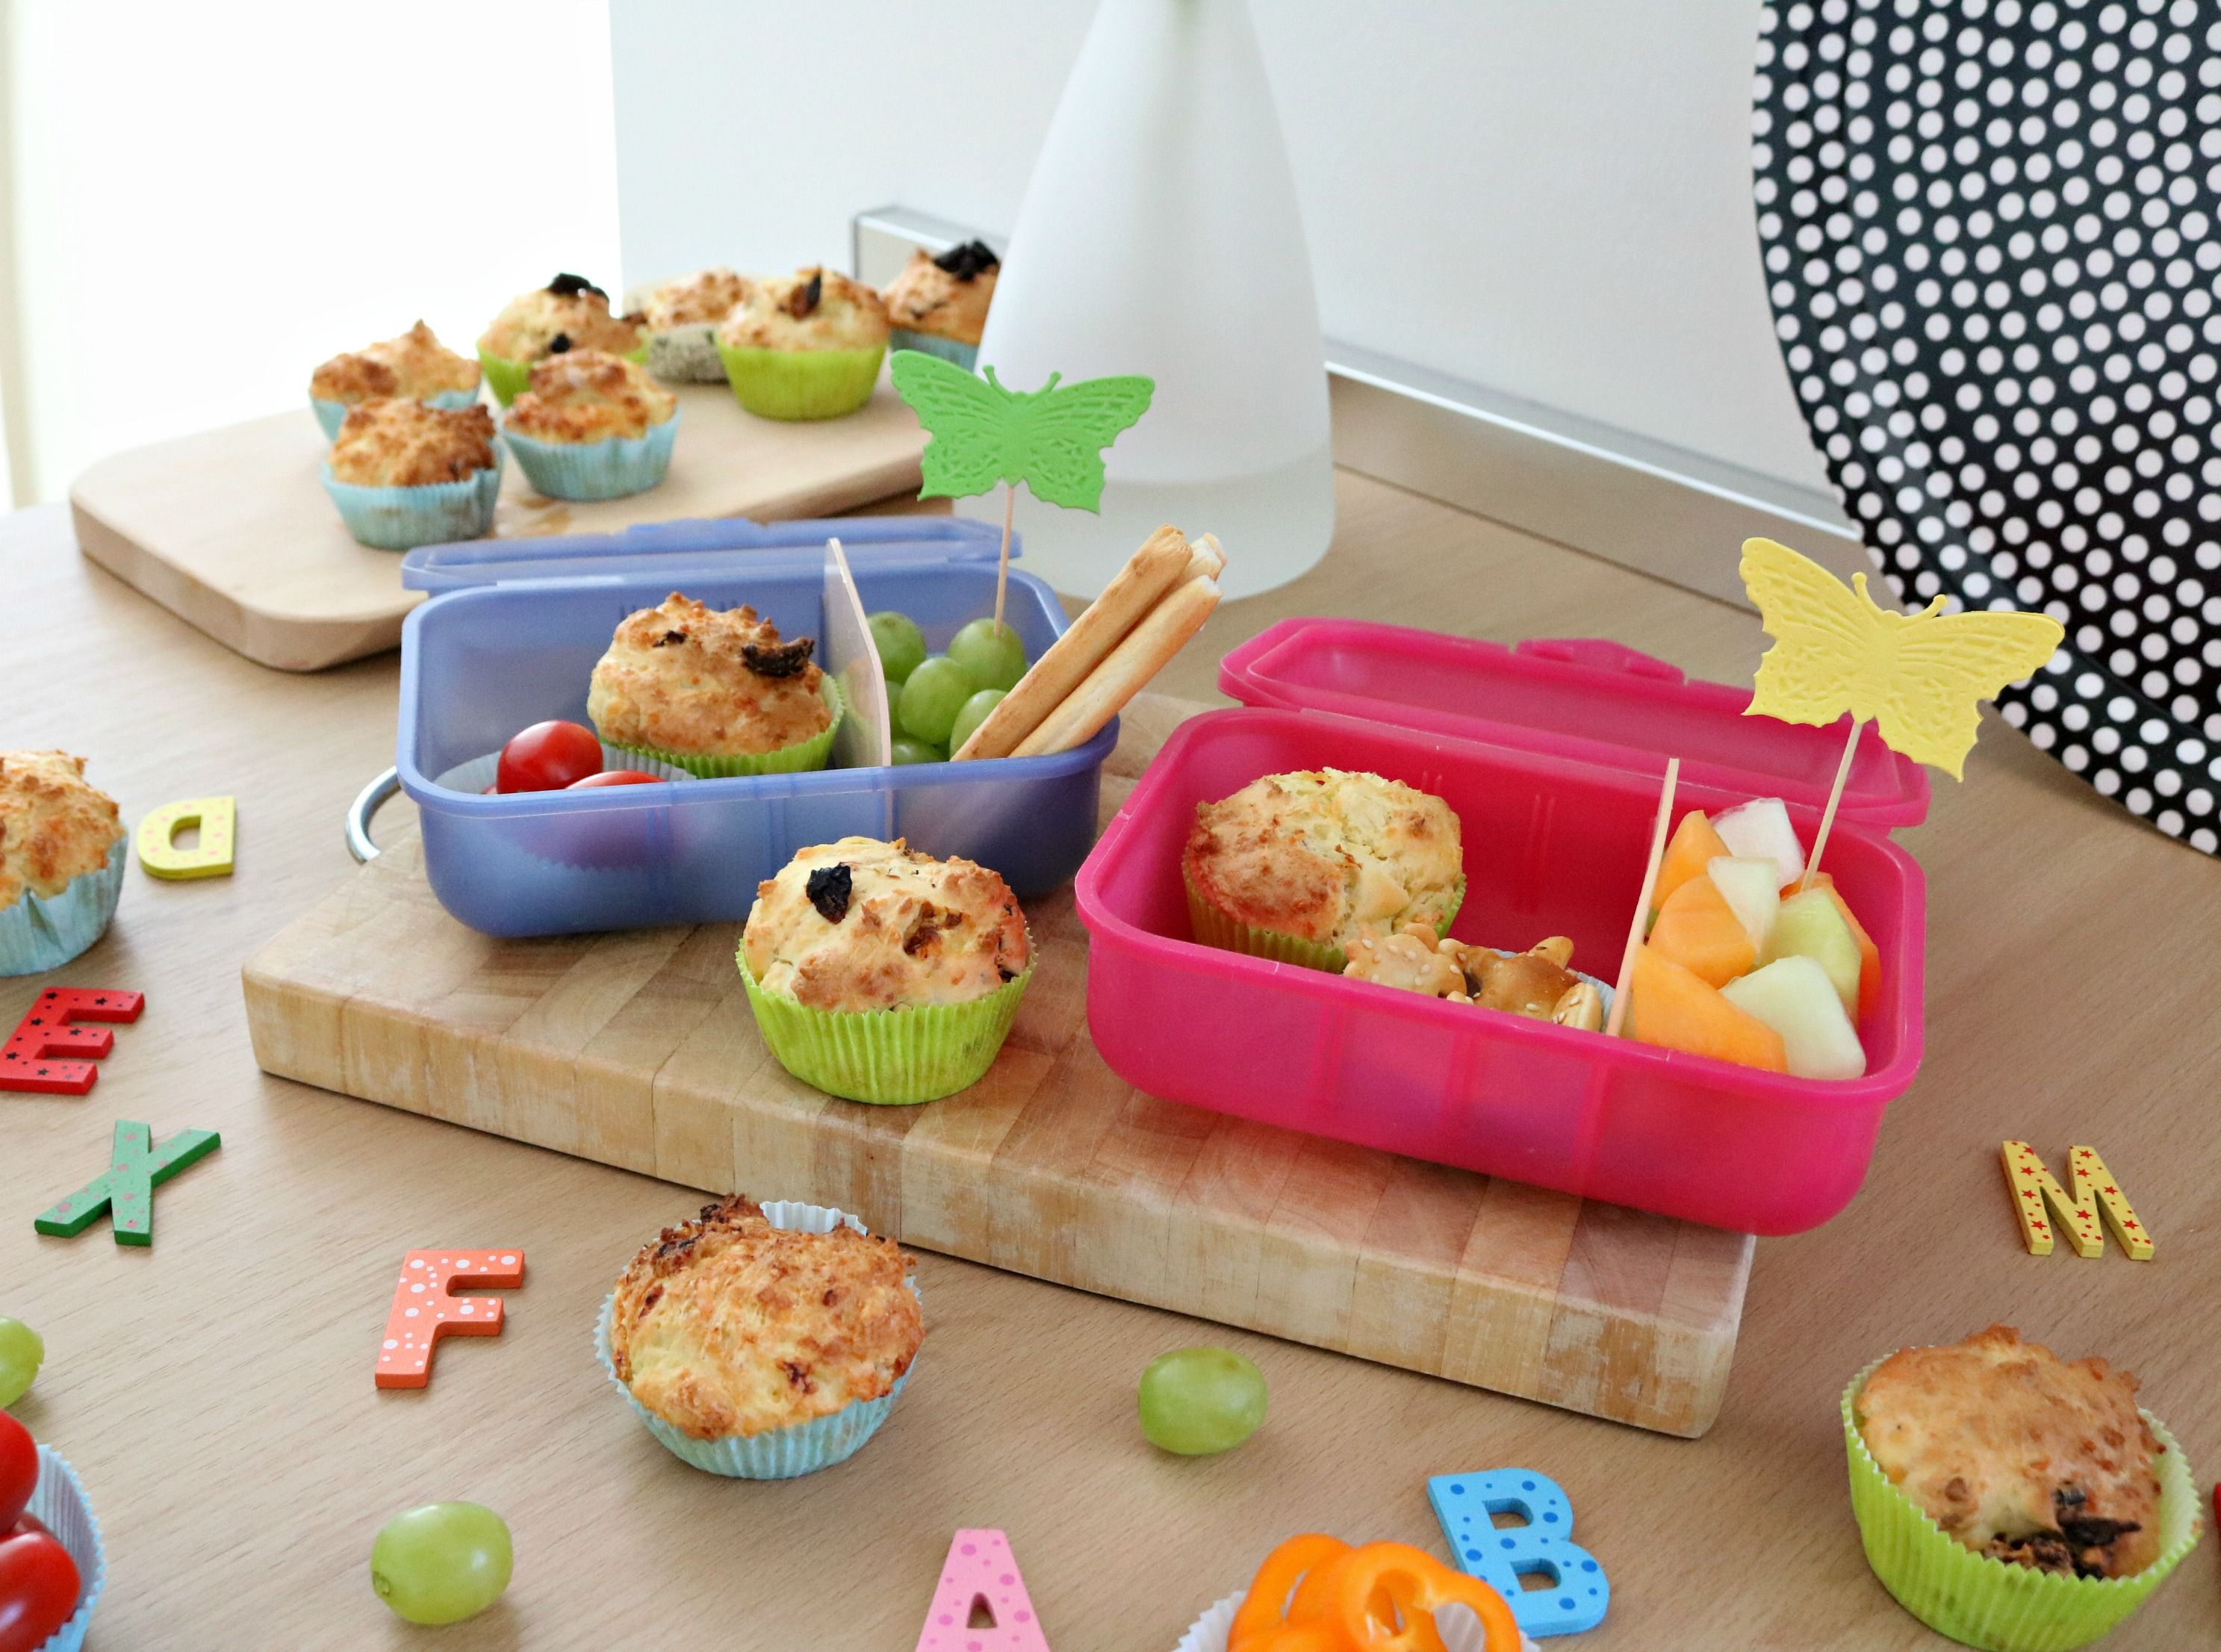 Food Back To School Käsemuffins Für Die Lunchbox Mit